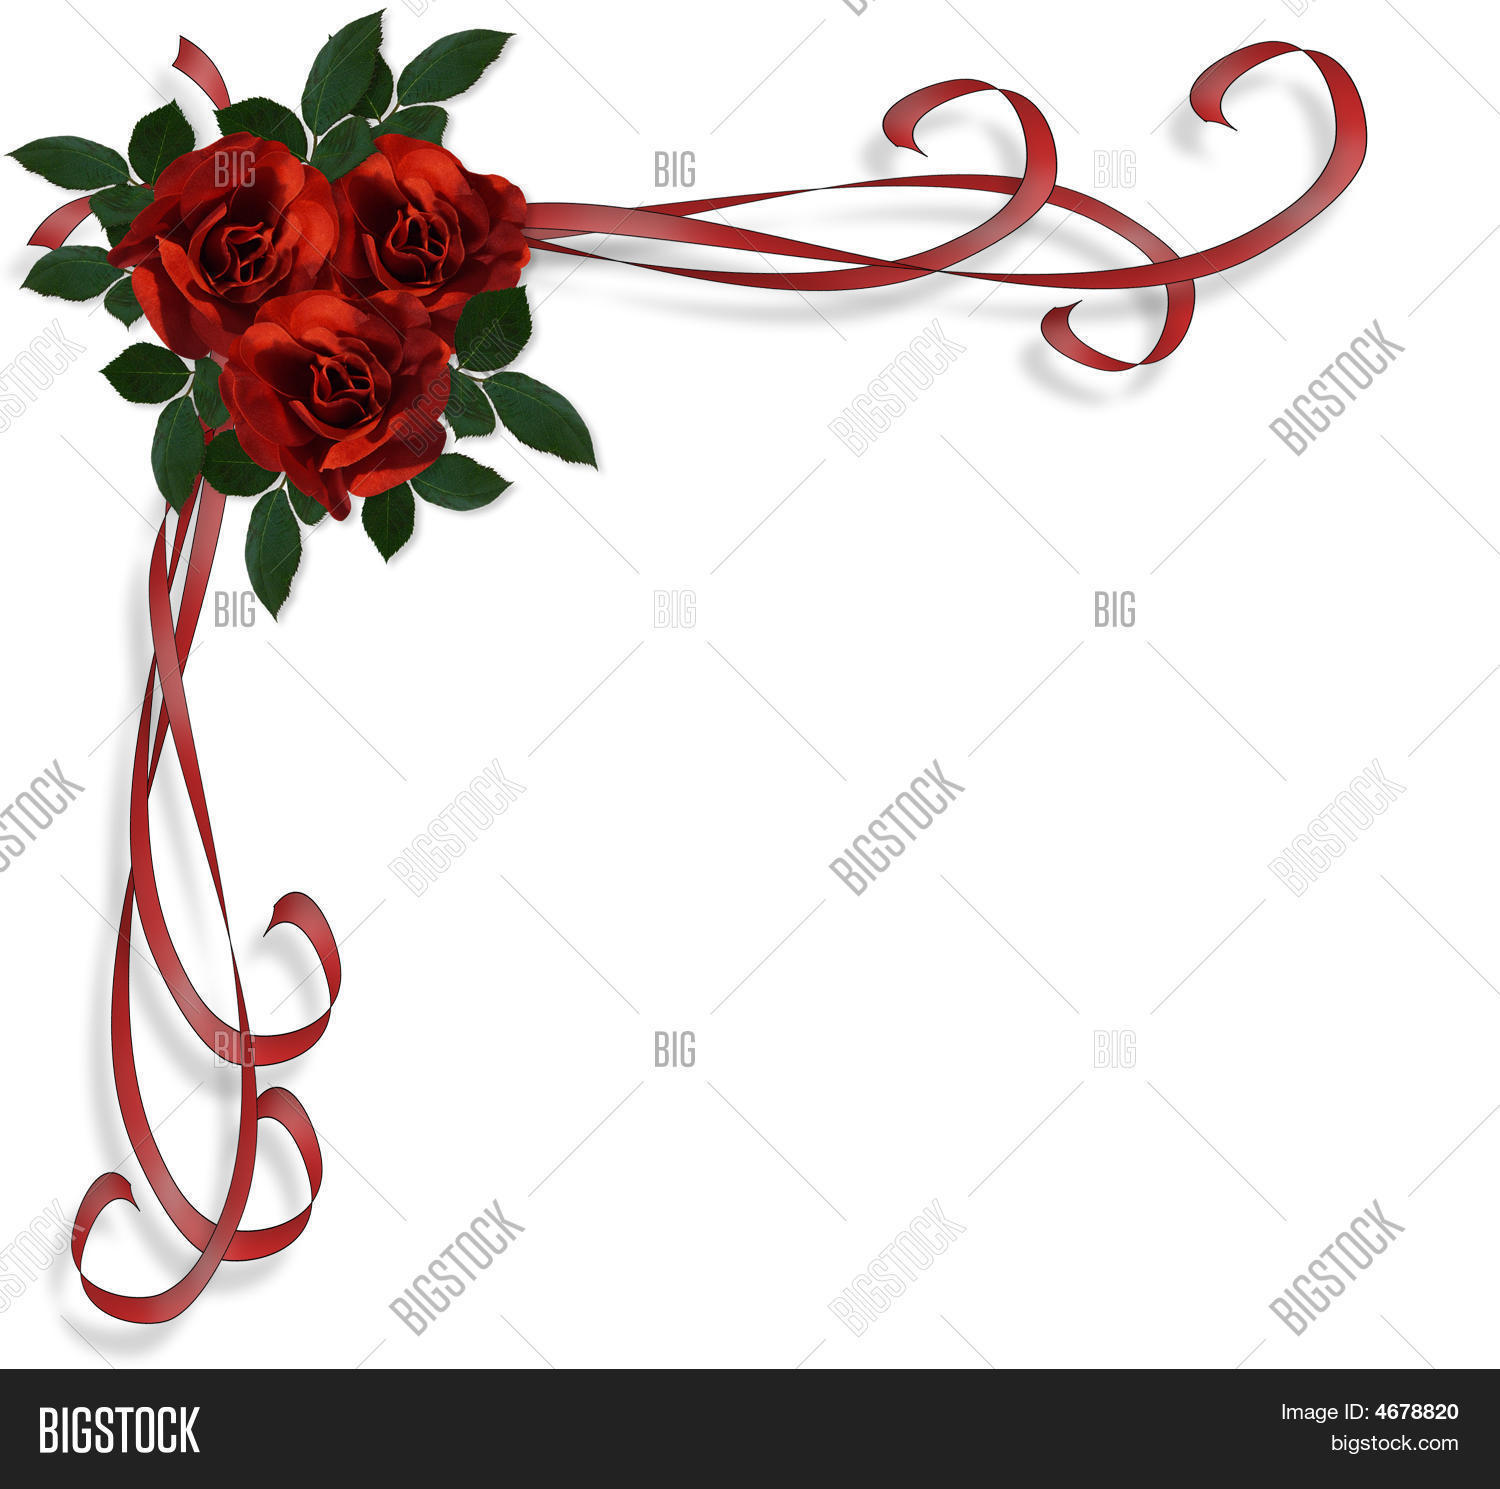 Red Roses Border Image & Photo (Free Trial) | Bigstock